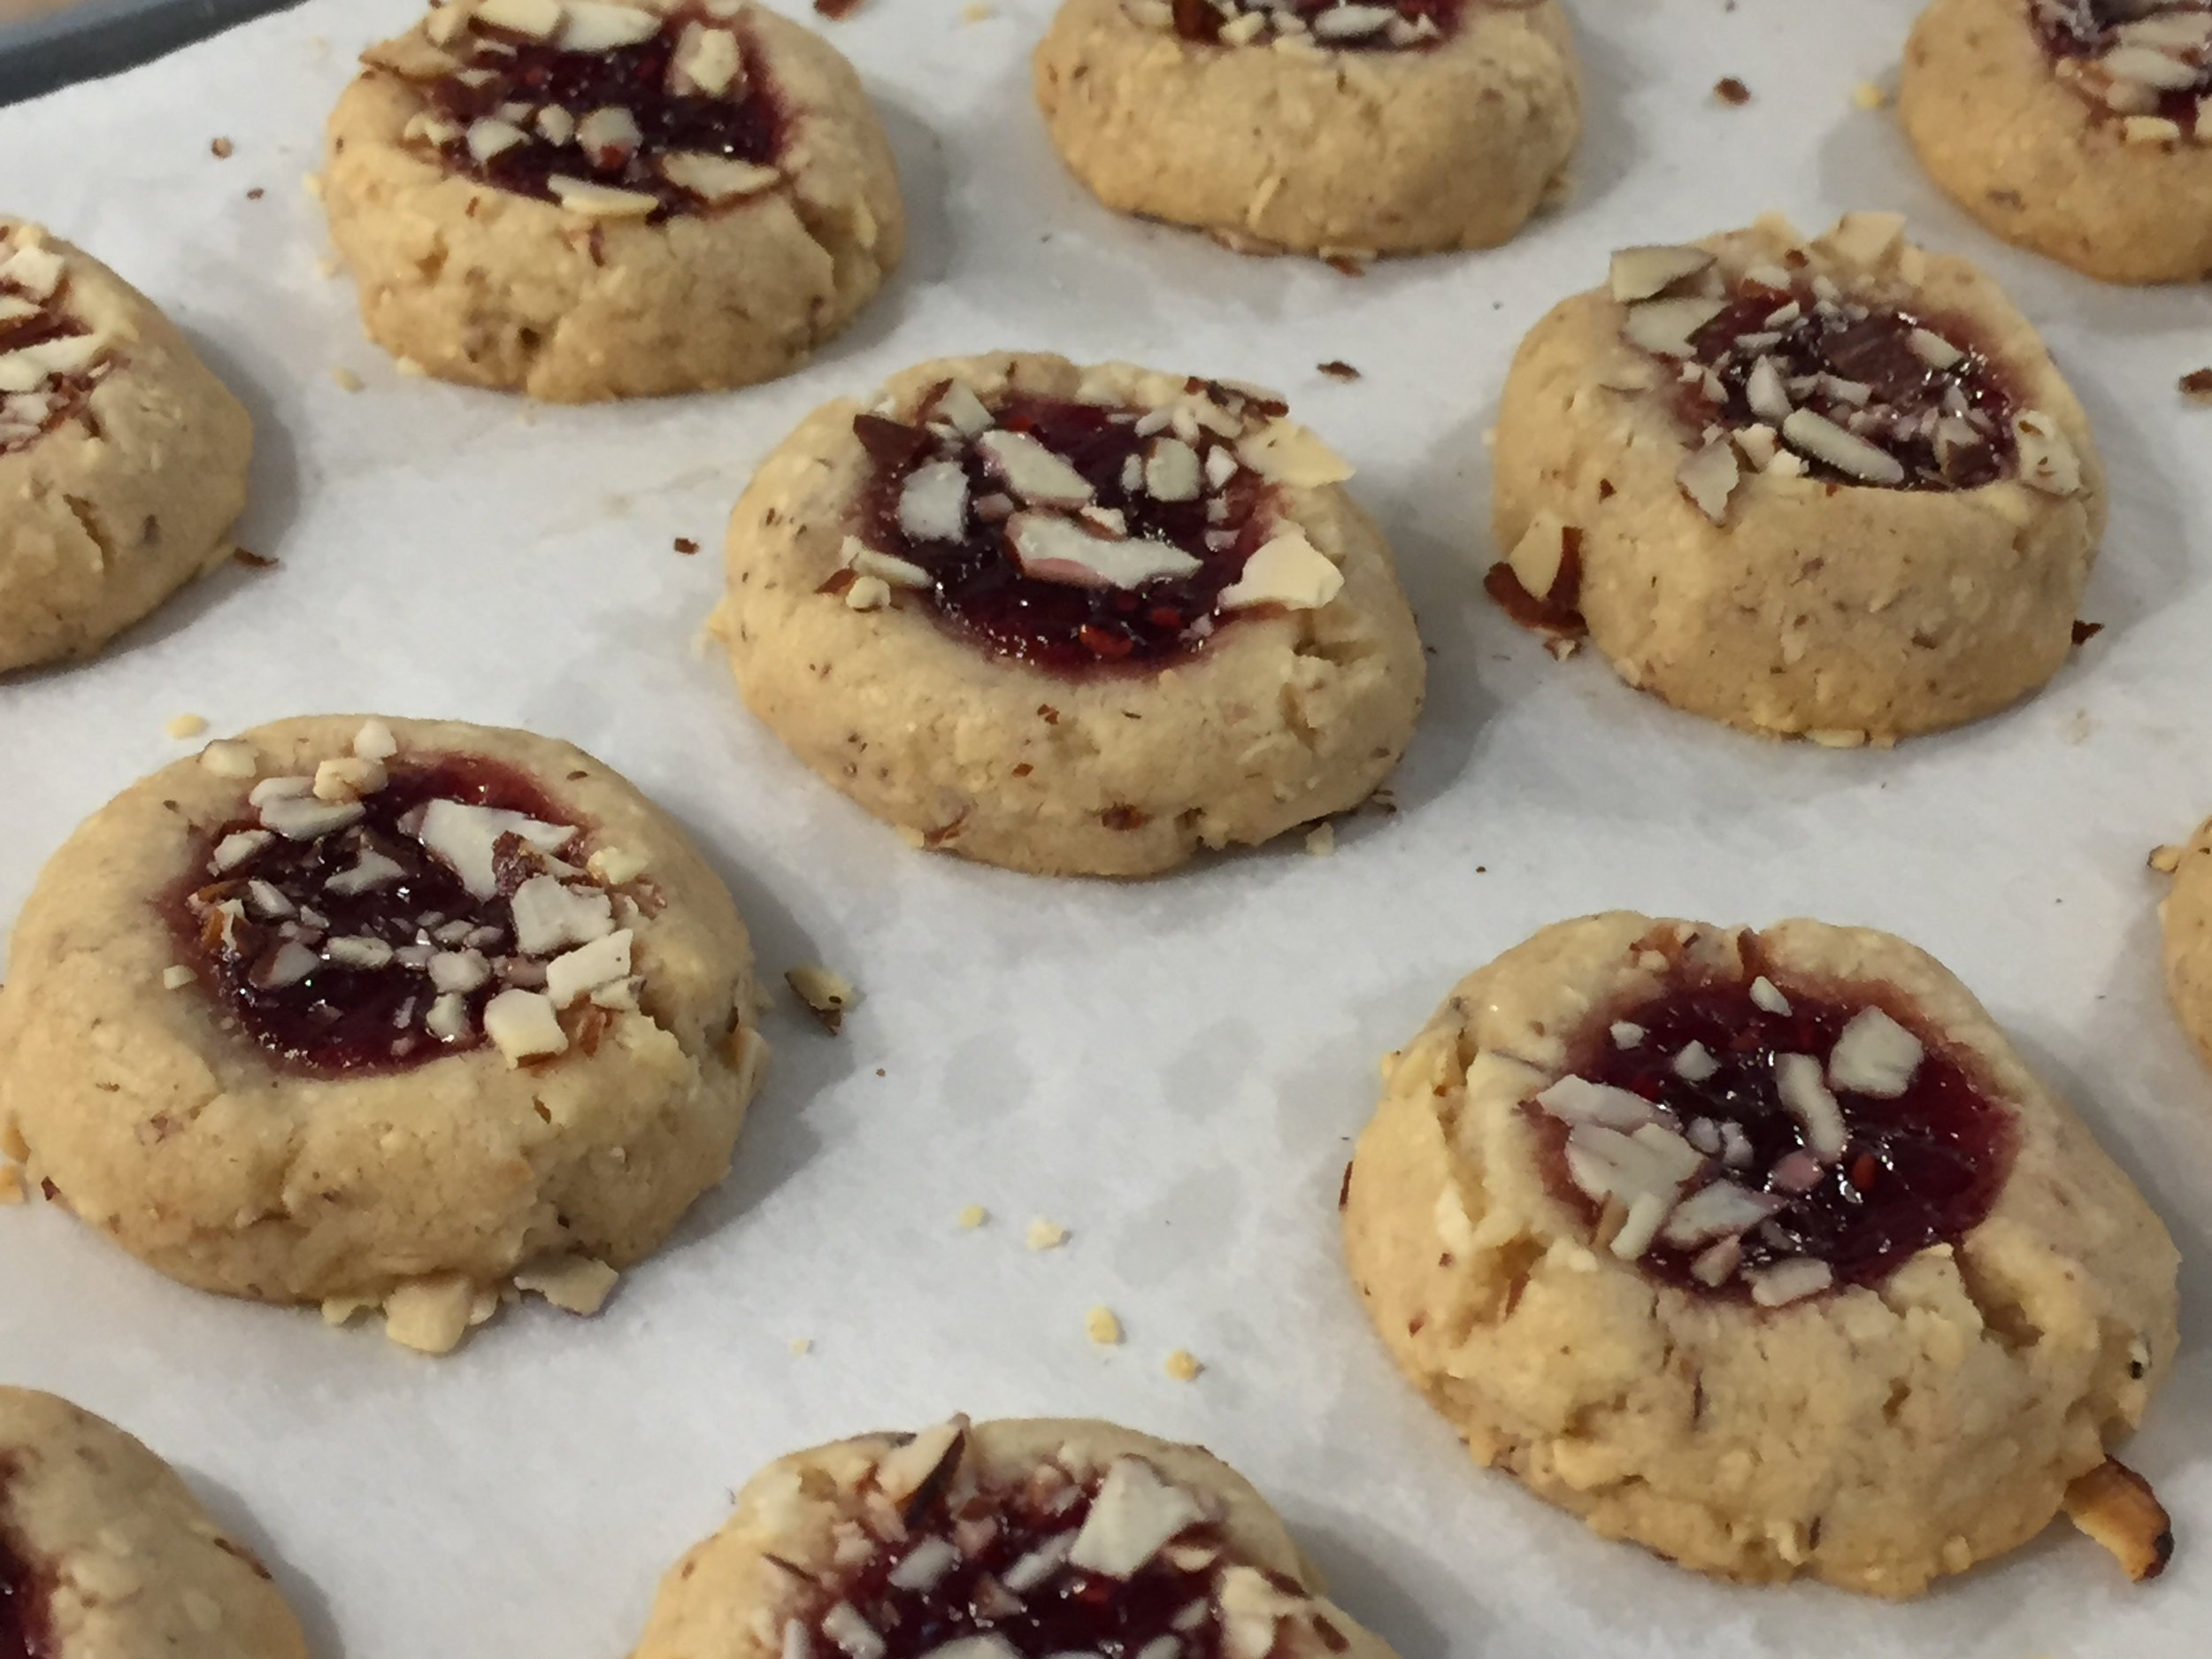 My current favorite cookie - Raspberry almond thumbprints